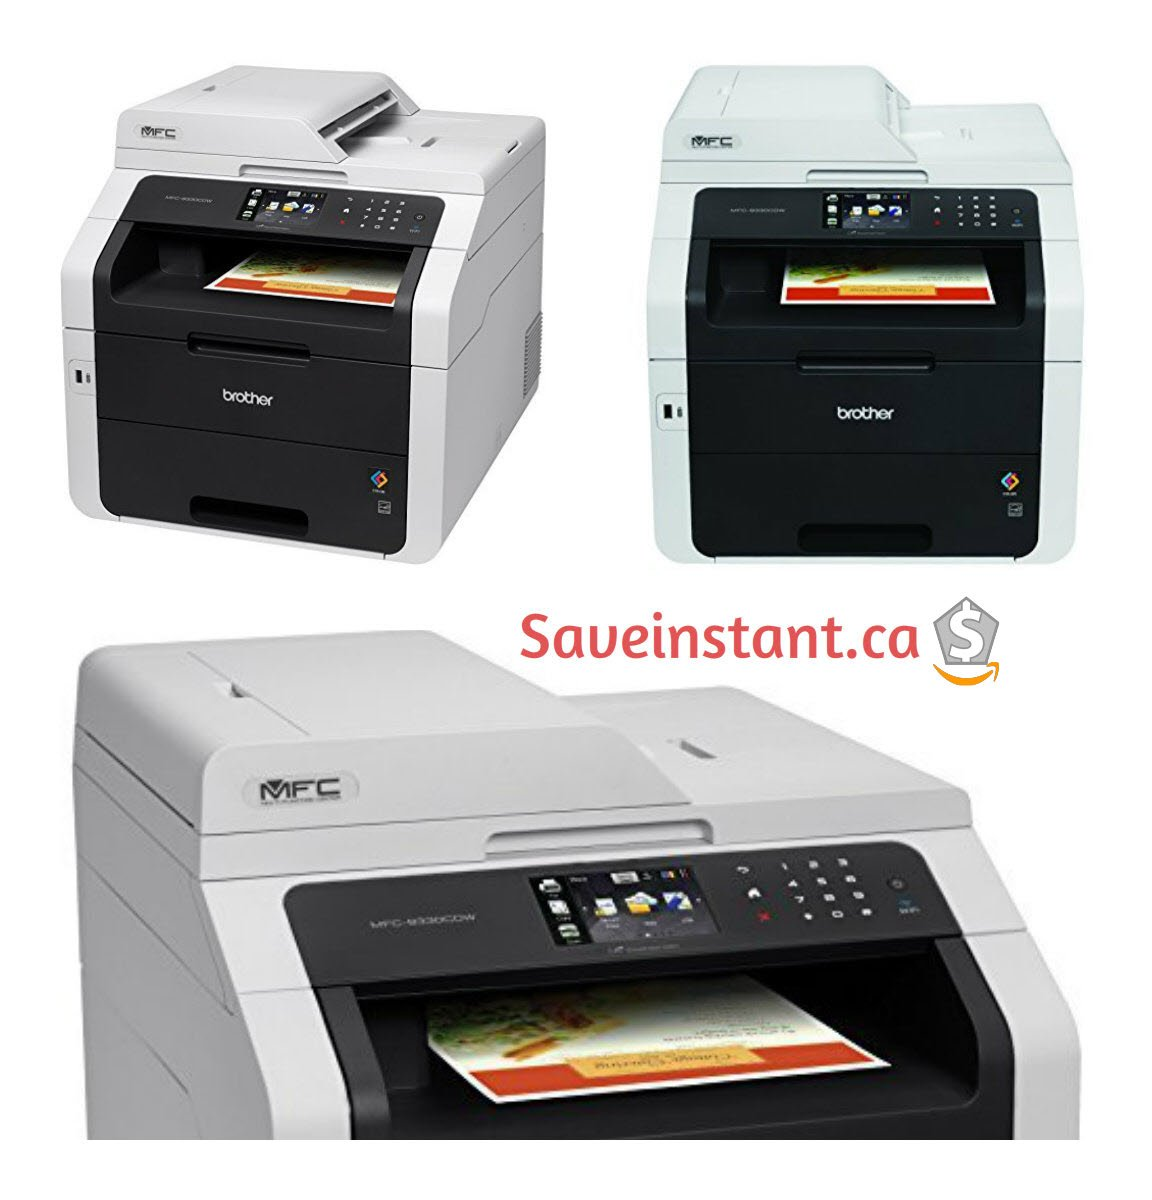 brother laser printer scanner copier fax hashtag on Twitter